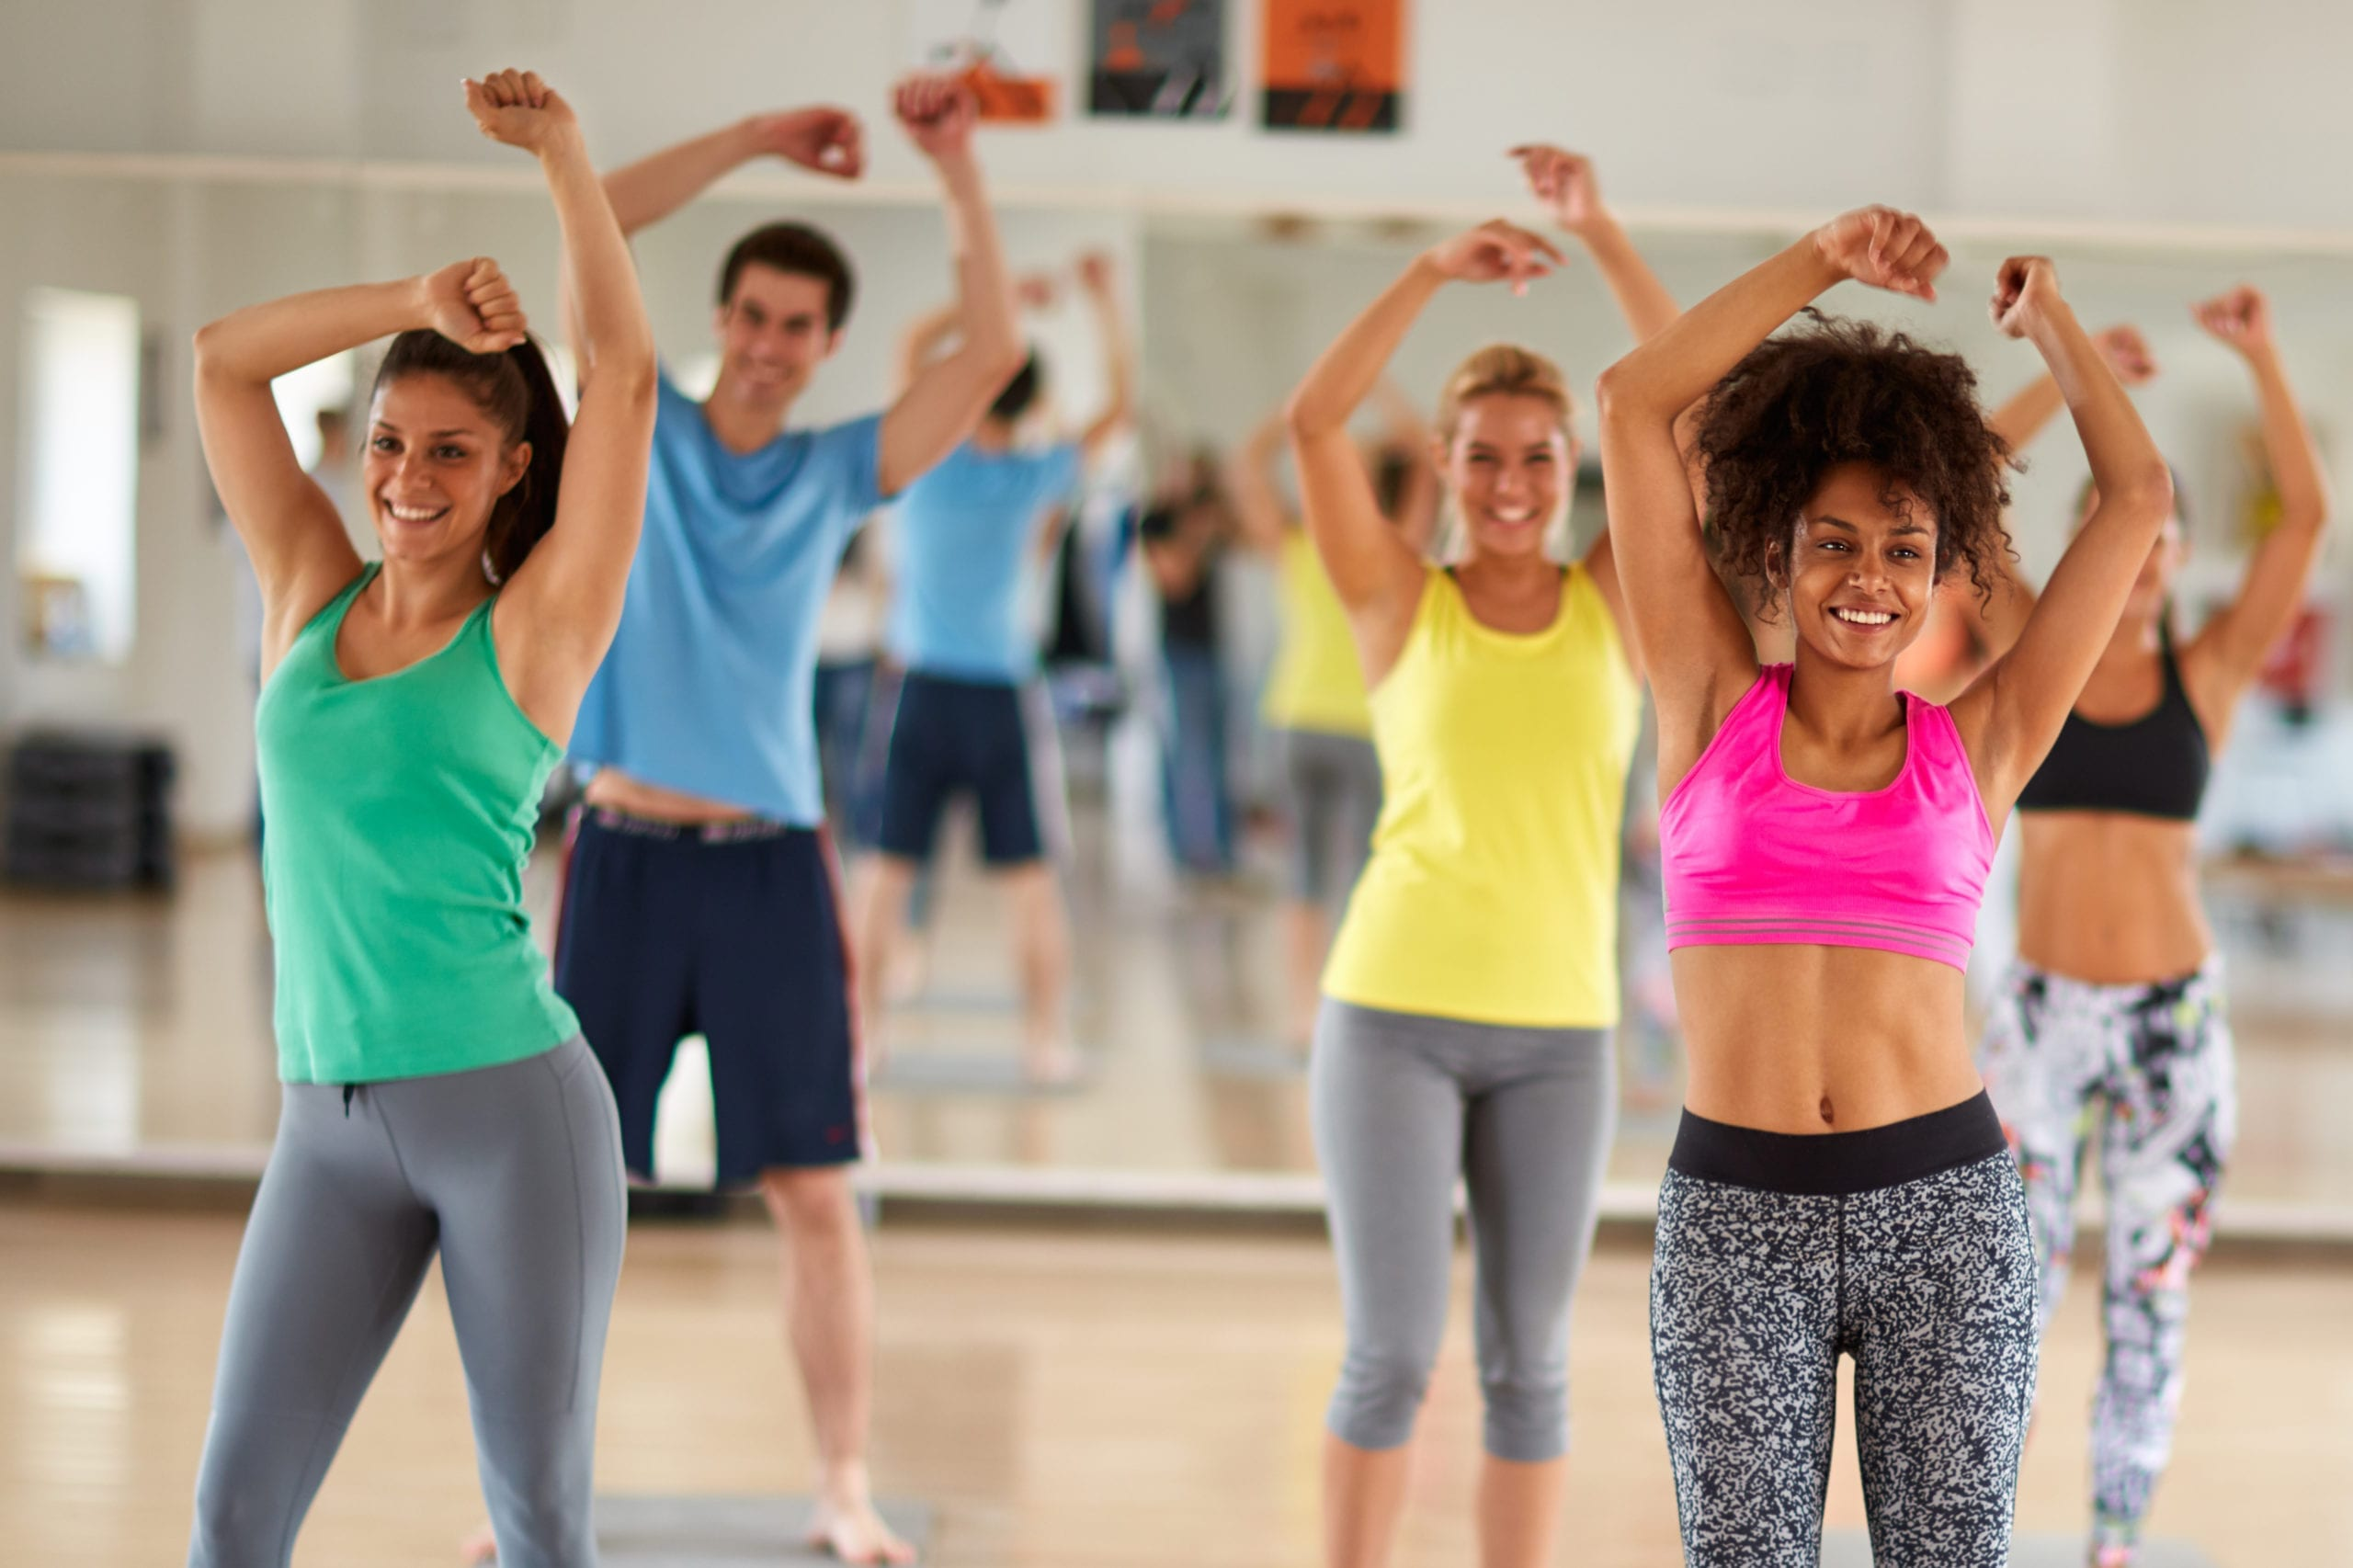 Group Fitness- RWJ RAHWAY FITNESS & WELLNESS AT CARTERET